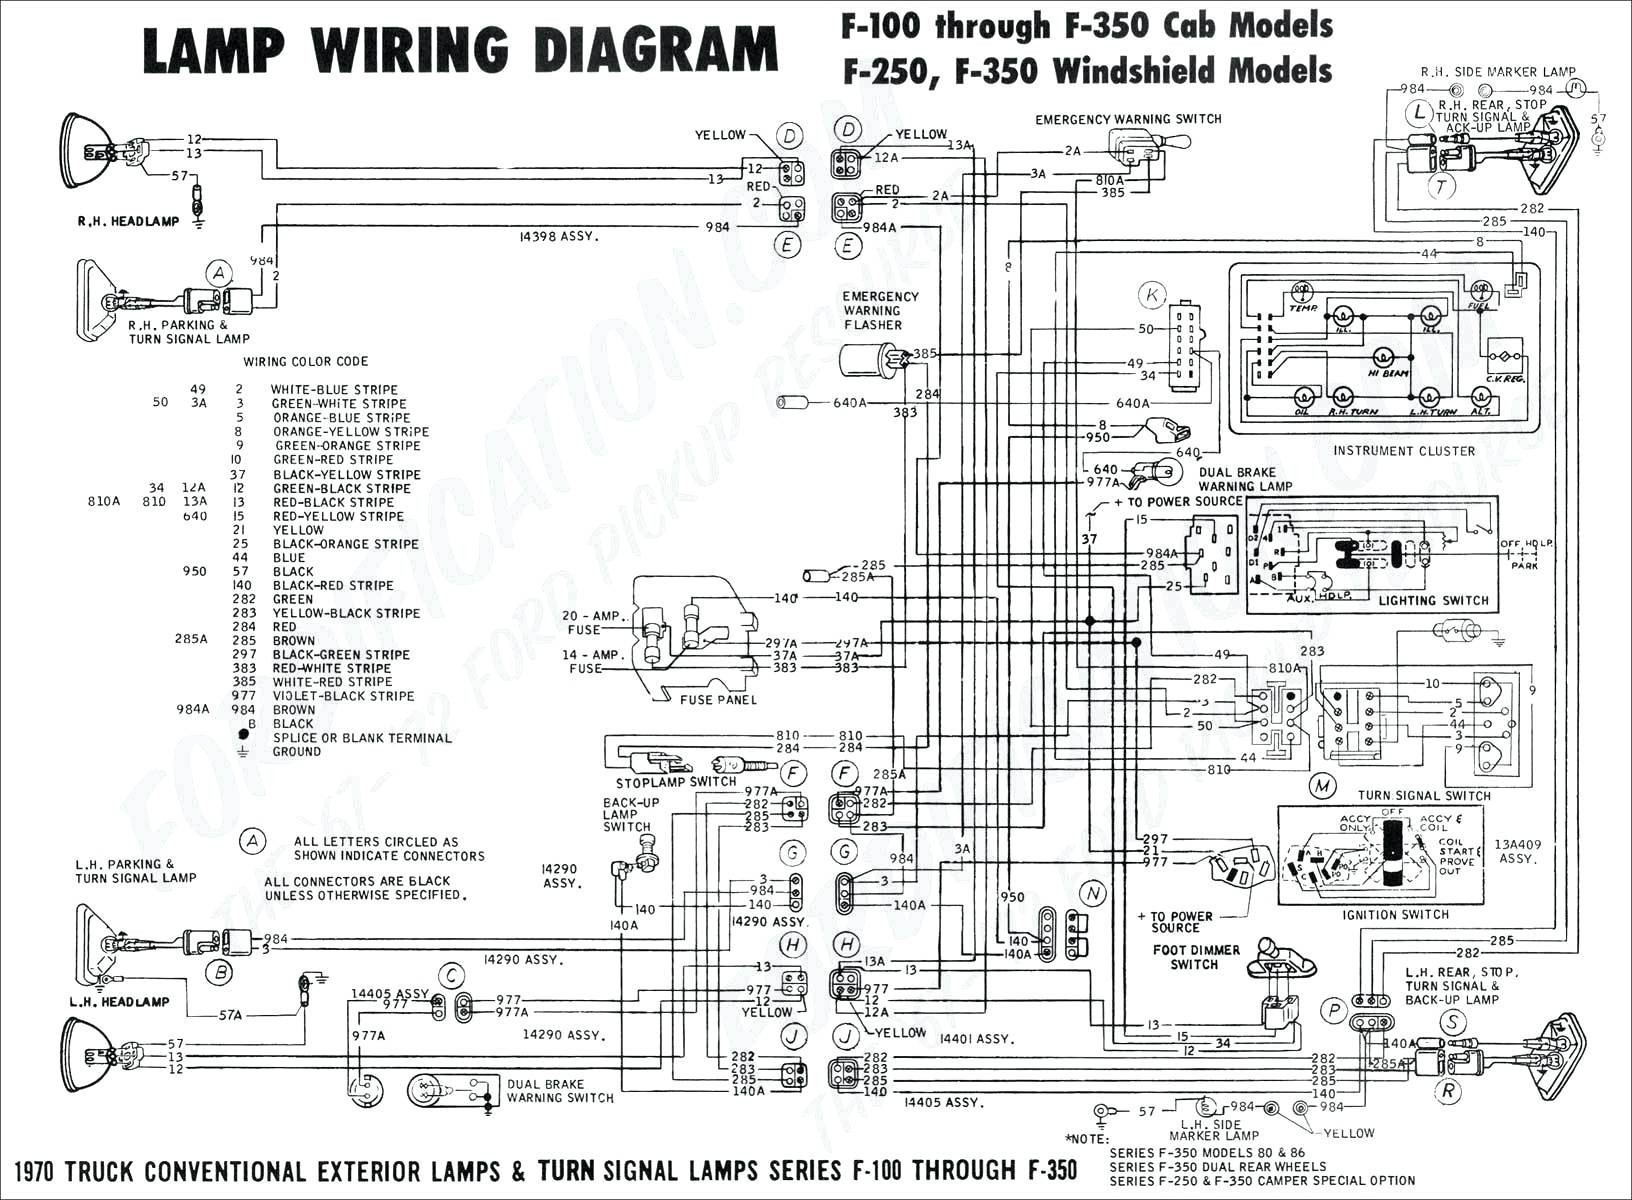 Diesel Engine Components Diagram 6 9 Glow Plug Relay Wiring Diagram Best Chevy 6 5 Diesel Engine